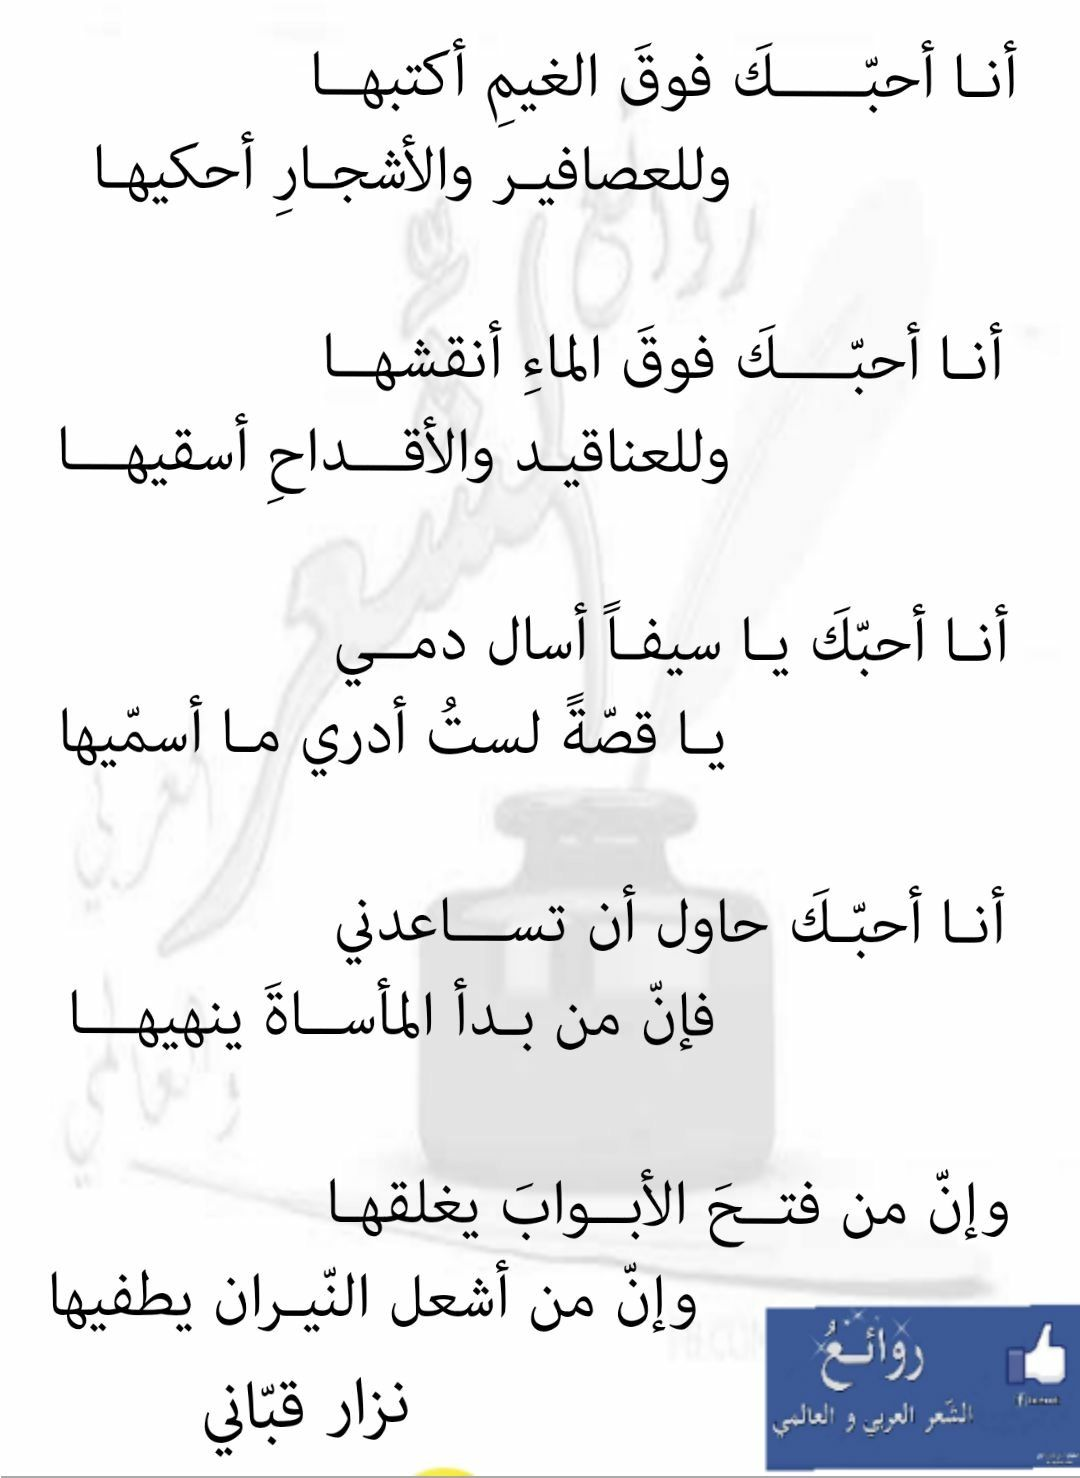 Romantic phrases in arabic